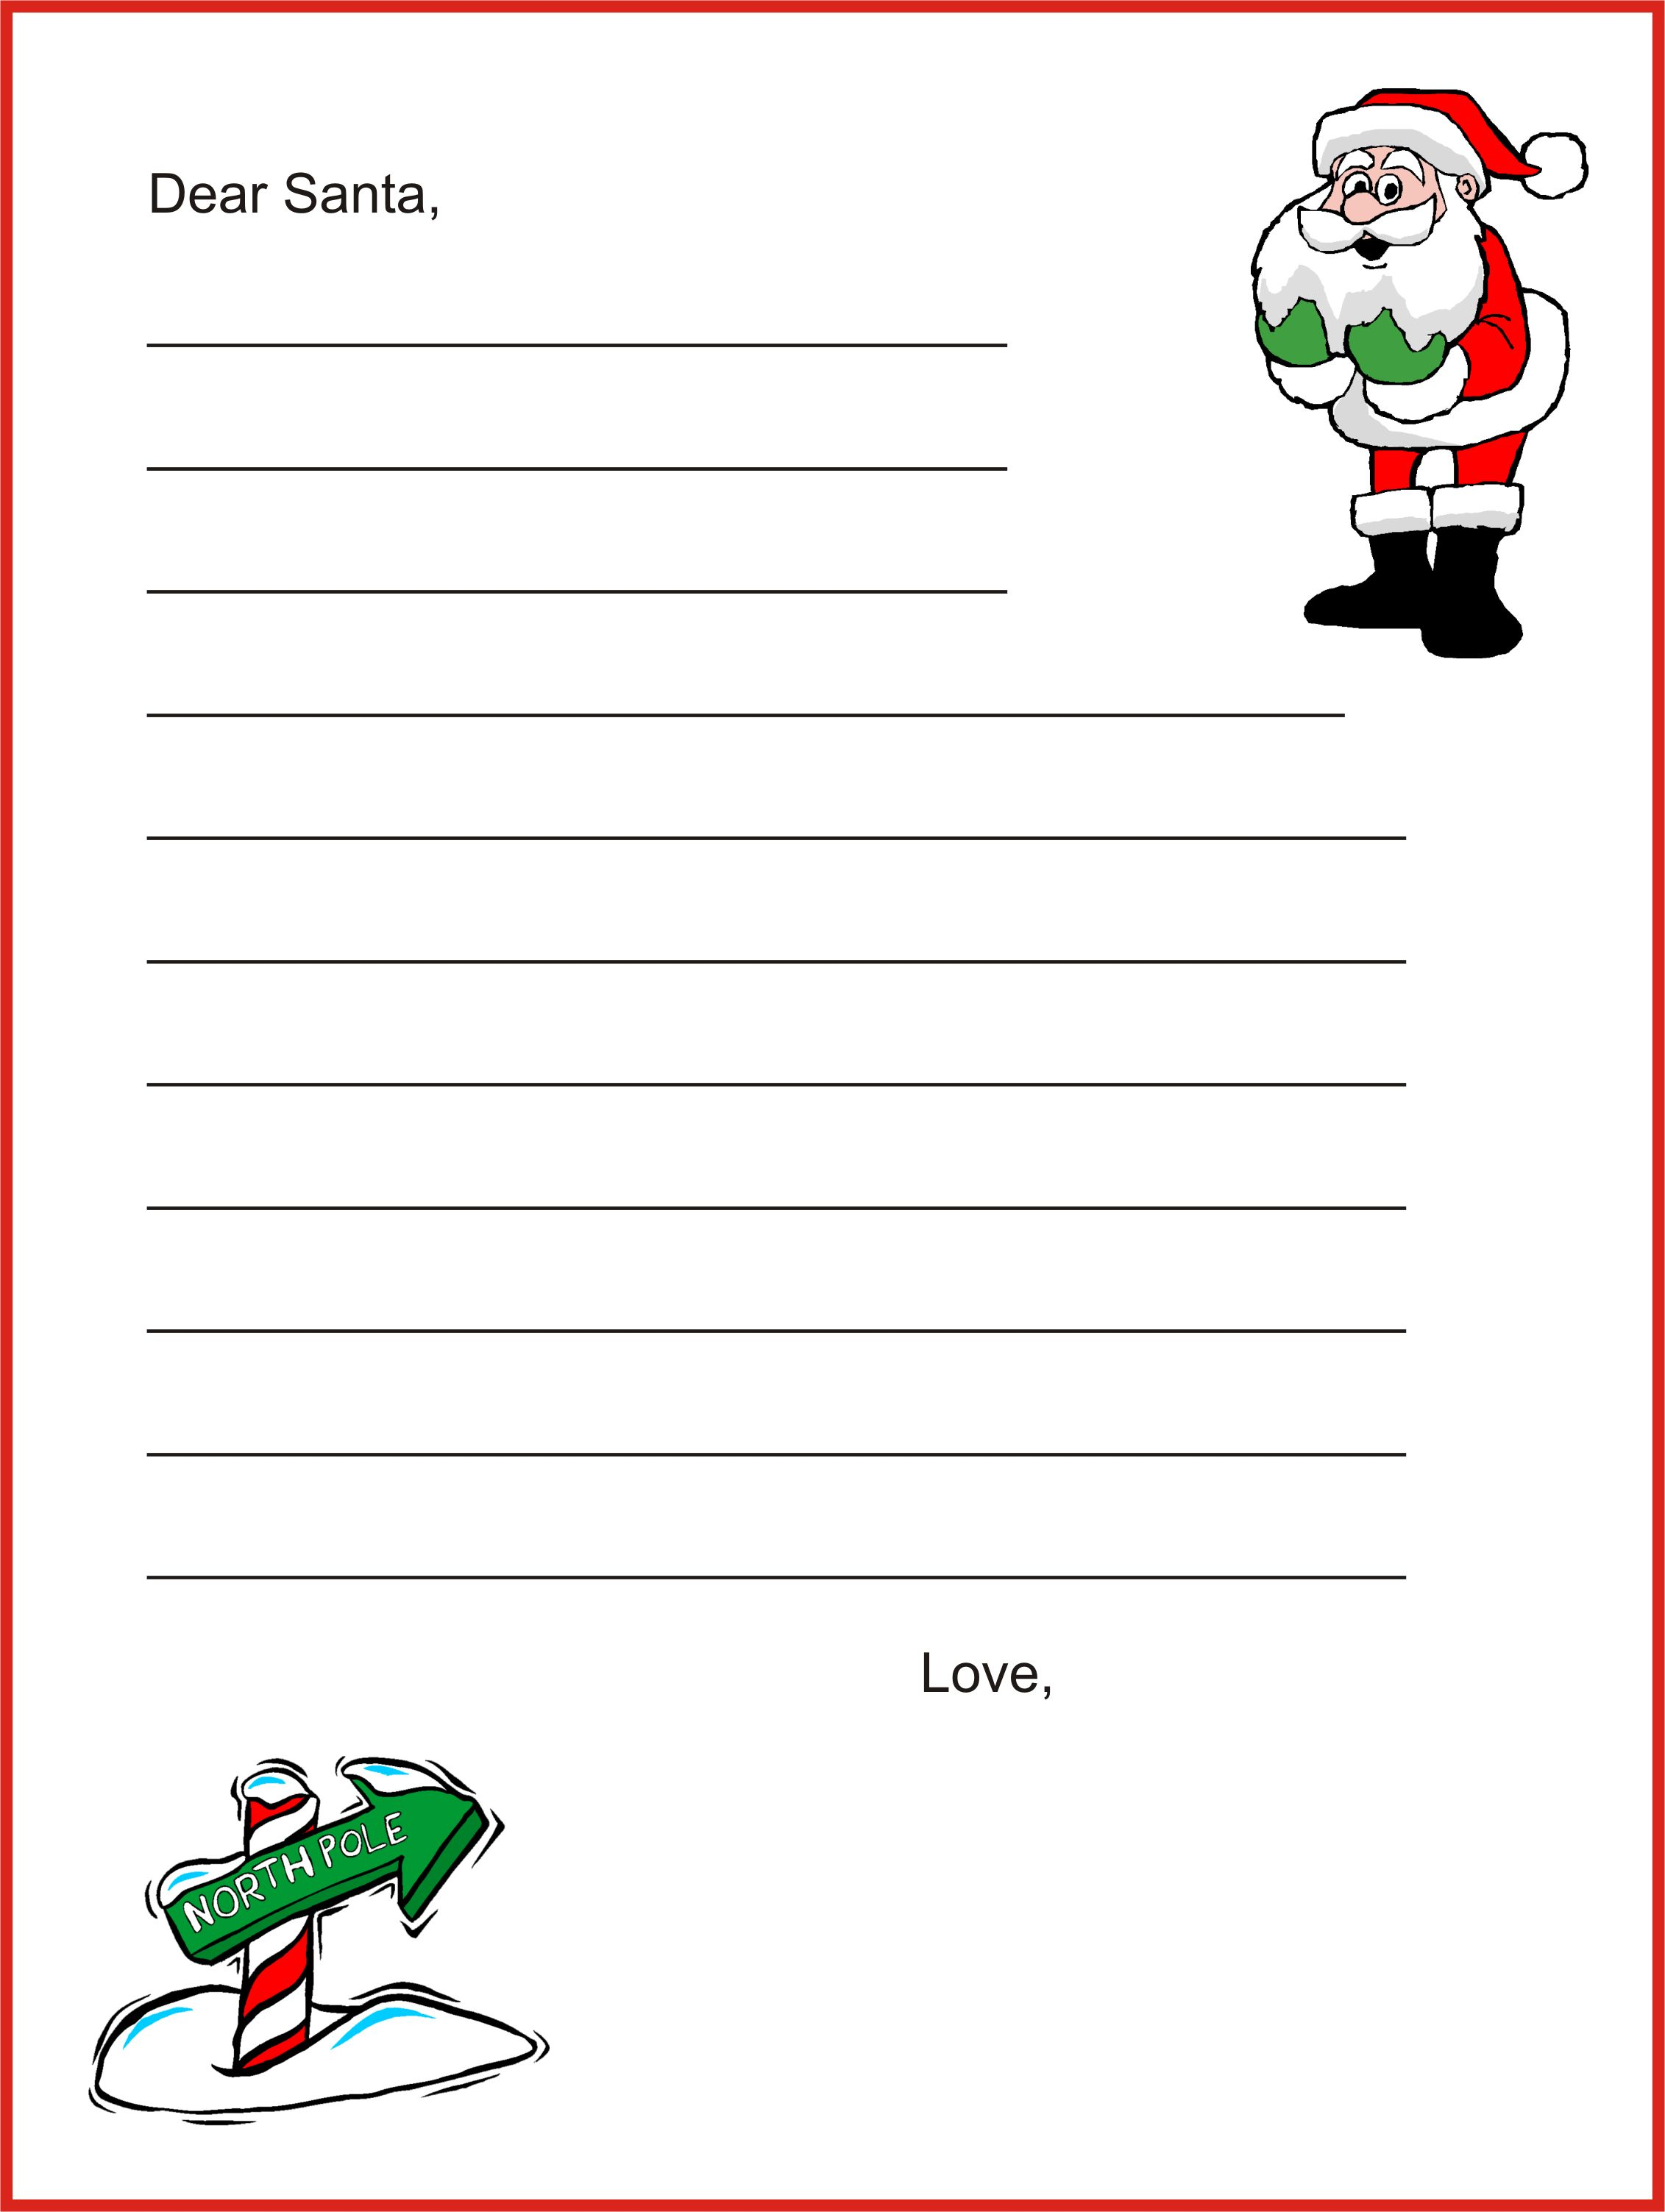 17 best images about printable santa letters 17 best images about printable santa letters santa letters a letter and printable letters